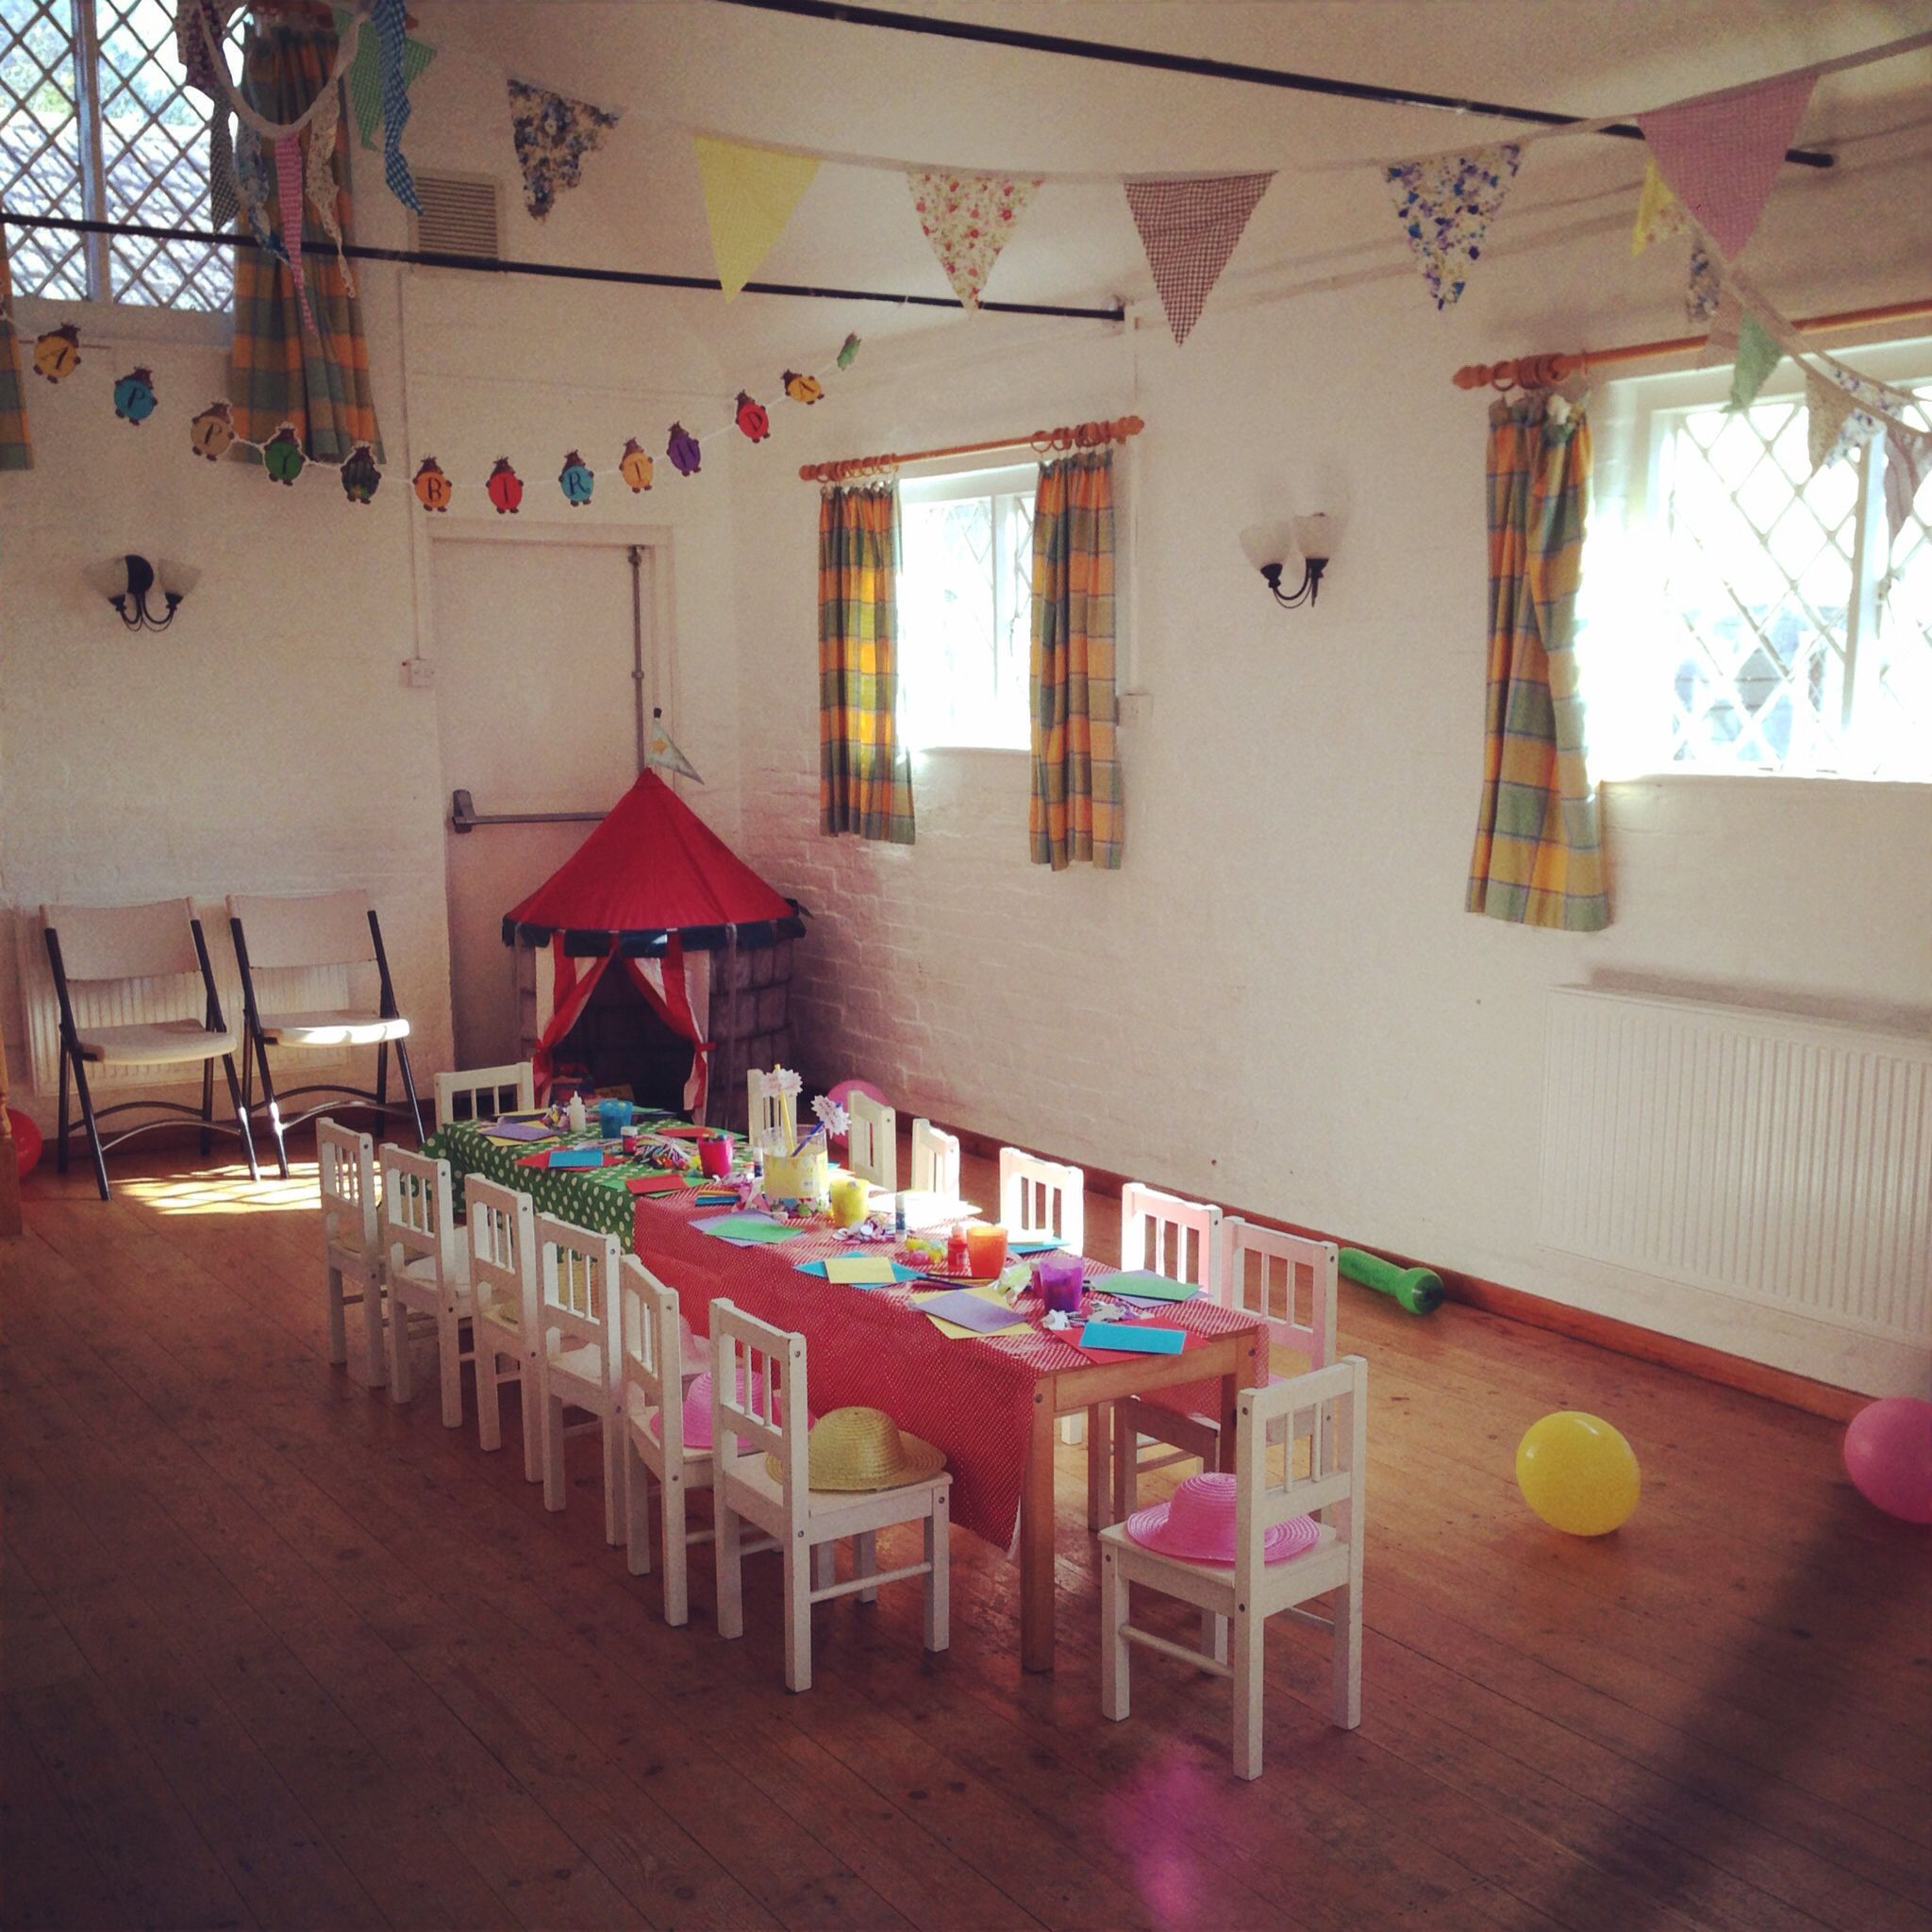 Village Hall Toddler 39 S Birthday Party Old School Style